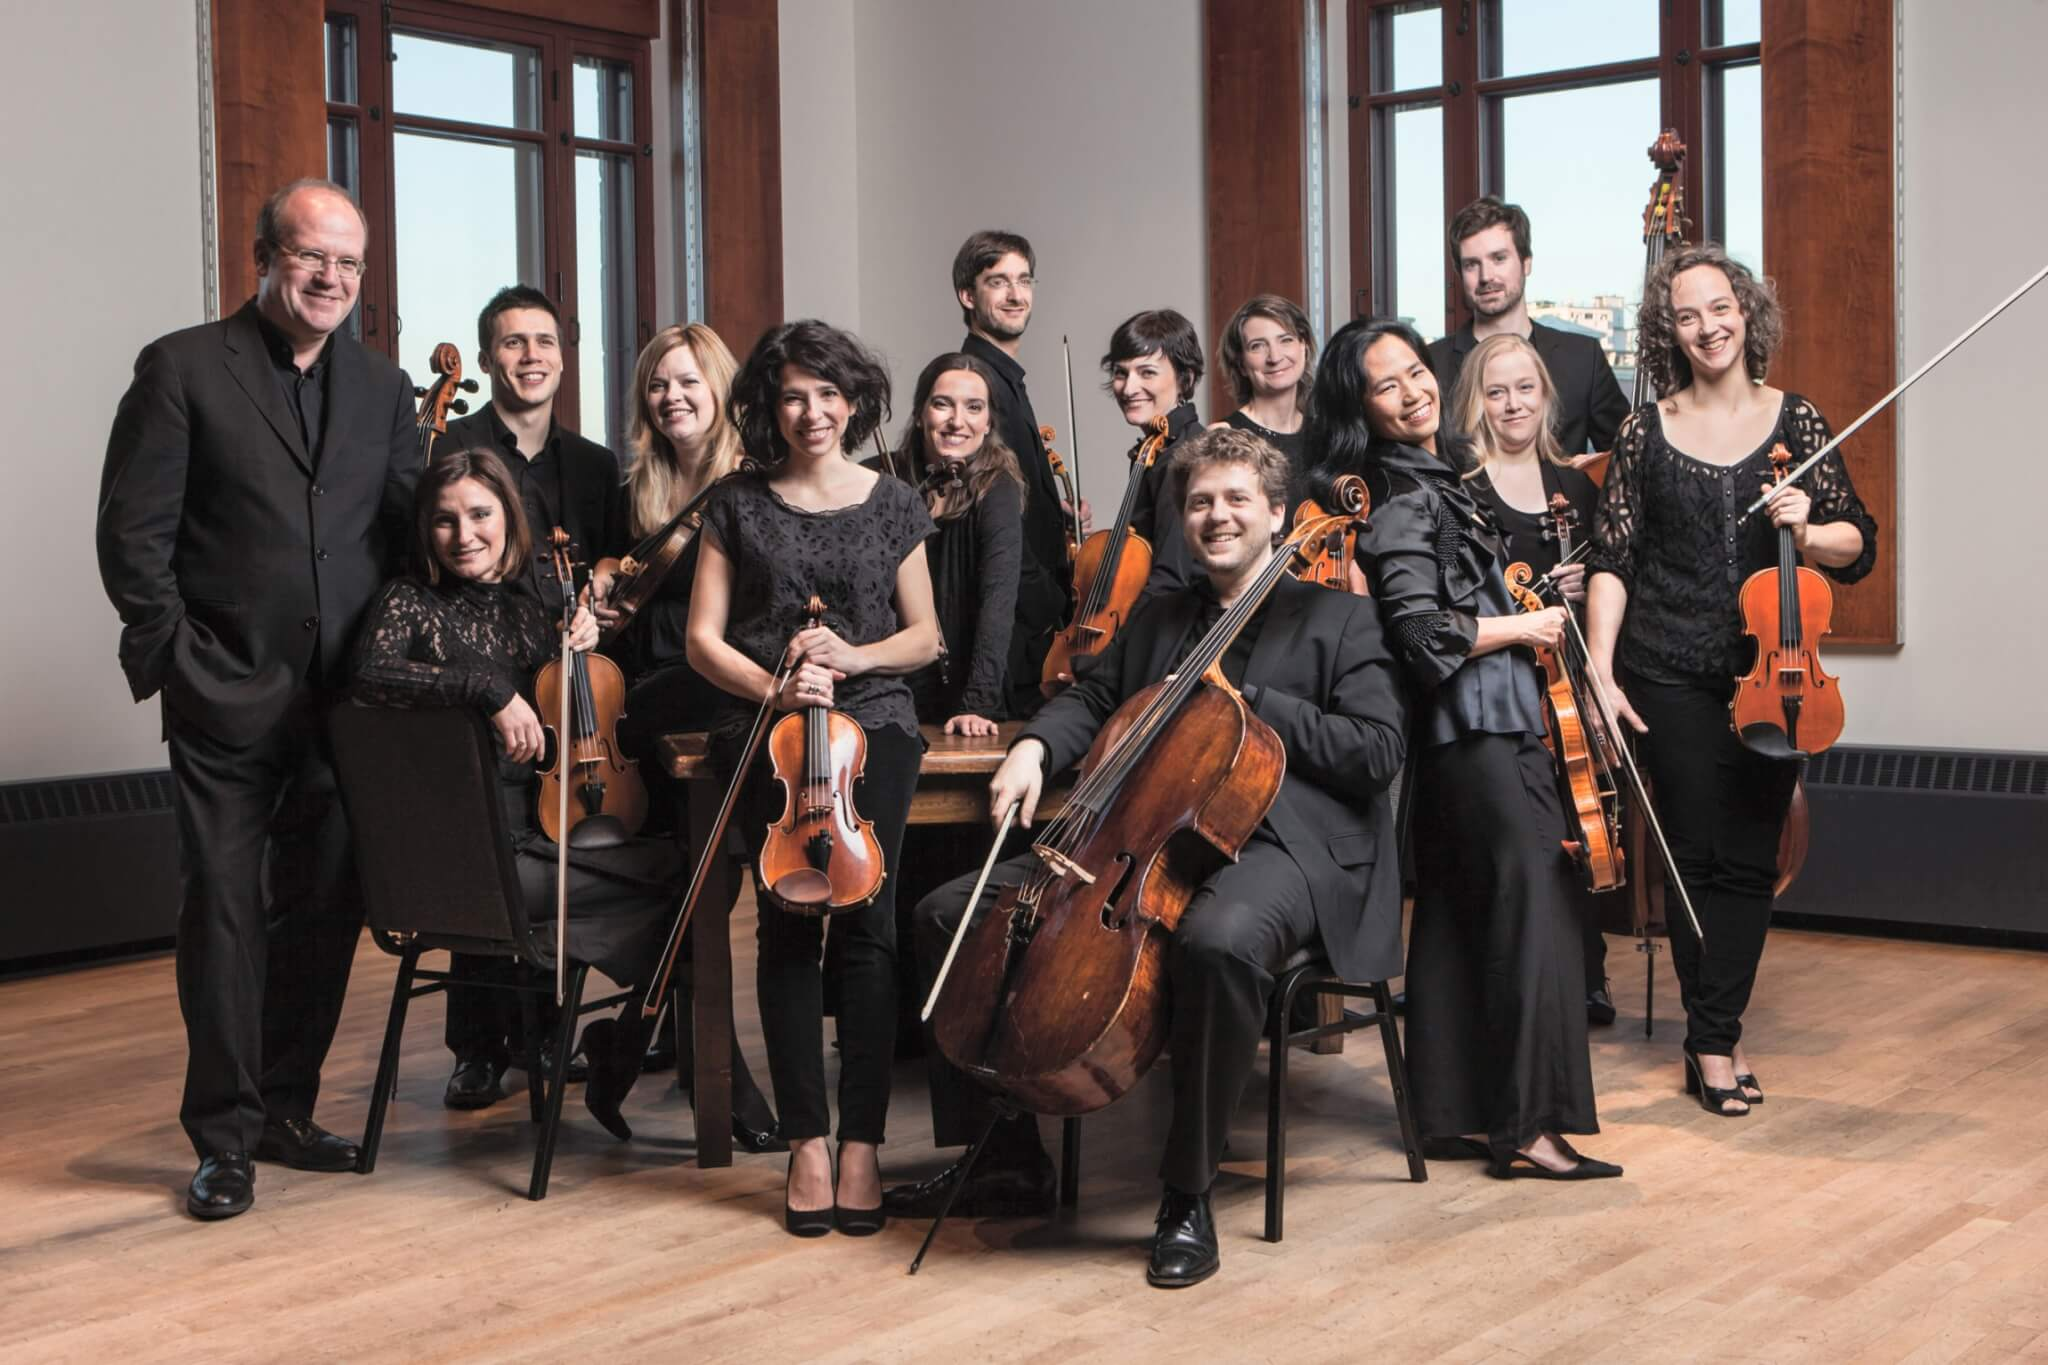 Les Violons du Roy group picture